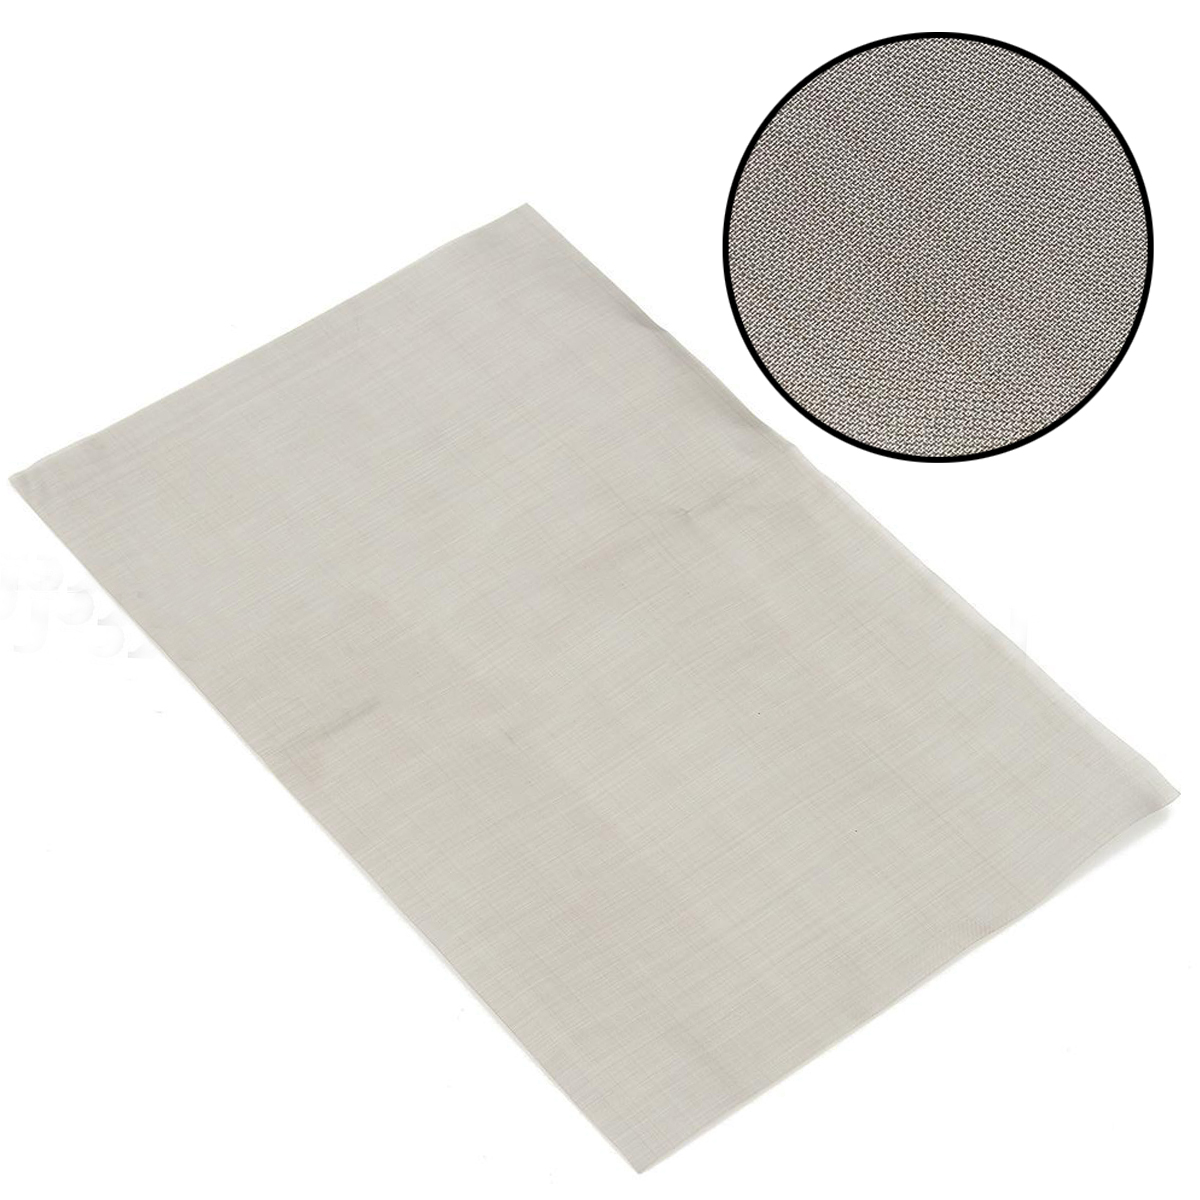 1pc Durable Silver 180/300/325/400 Mesh Woven Wire Mayitr Stainless Steel Filter Woven Wires Sheet Filter for Mining 30cm*20cm durable steel rod brass wire brush handle grinder deburring for wood steels root polished 8 in 1 copper wire wheel